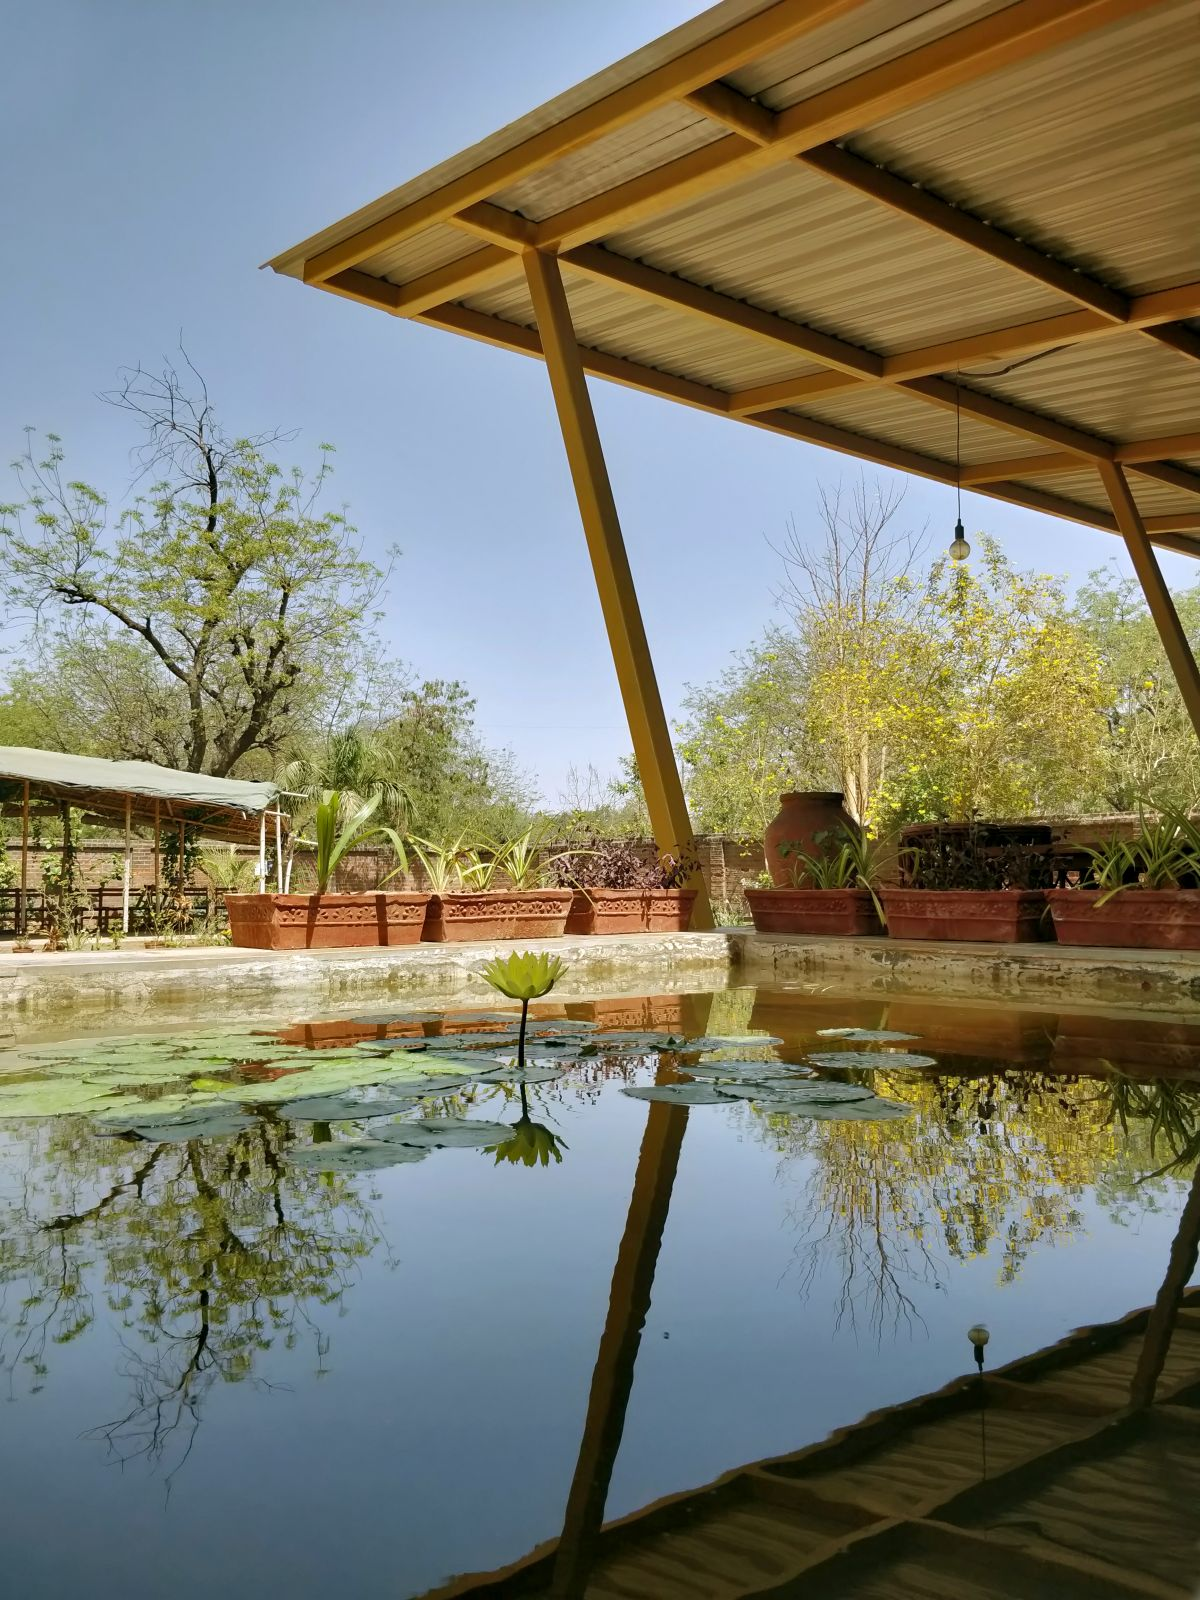 Kamala Cafe, Experiential journey in Nature's bliss, by Studio Praxis 16